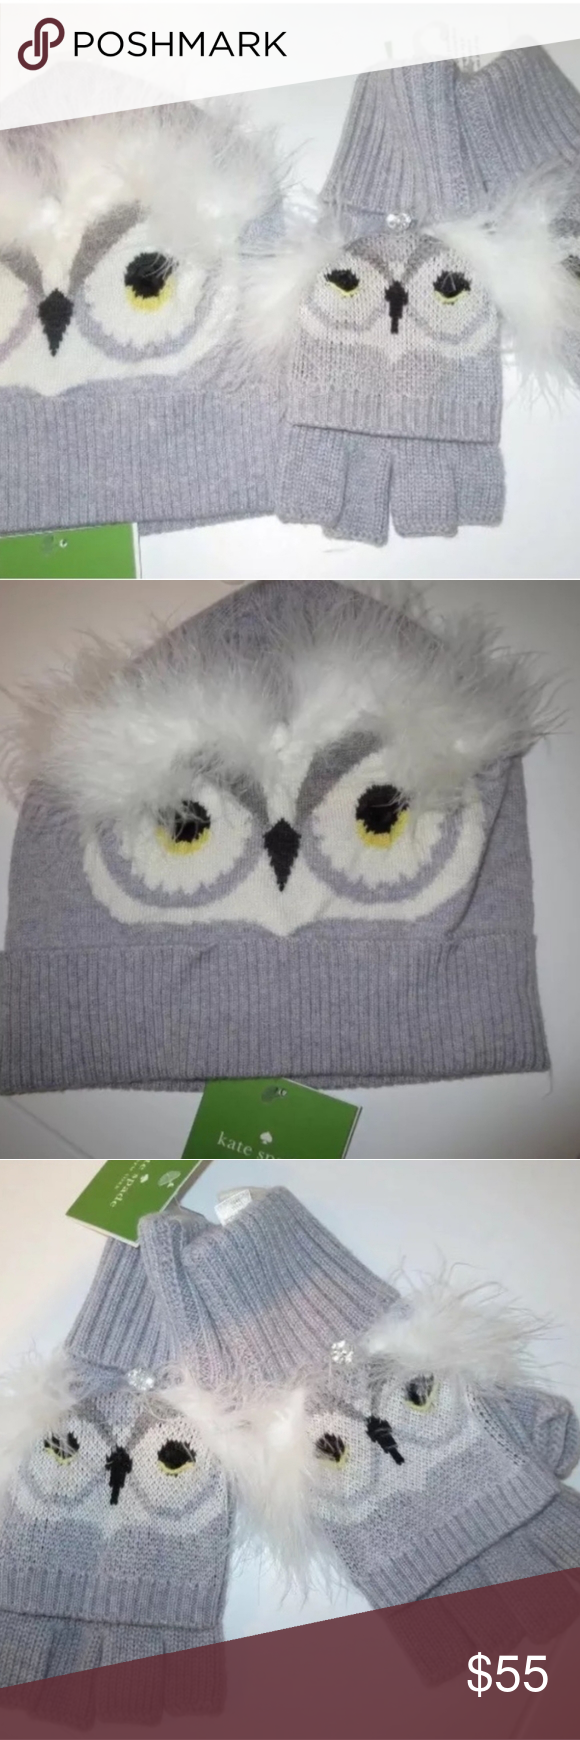 Kate Spade Who Me Owl Mittens Gloves Hat Set Nwt In 2020 Mitten Gloves Mittens Hats